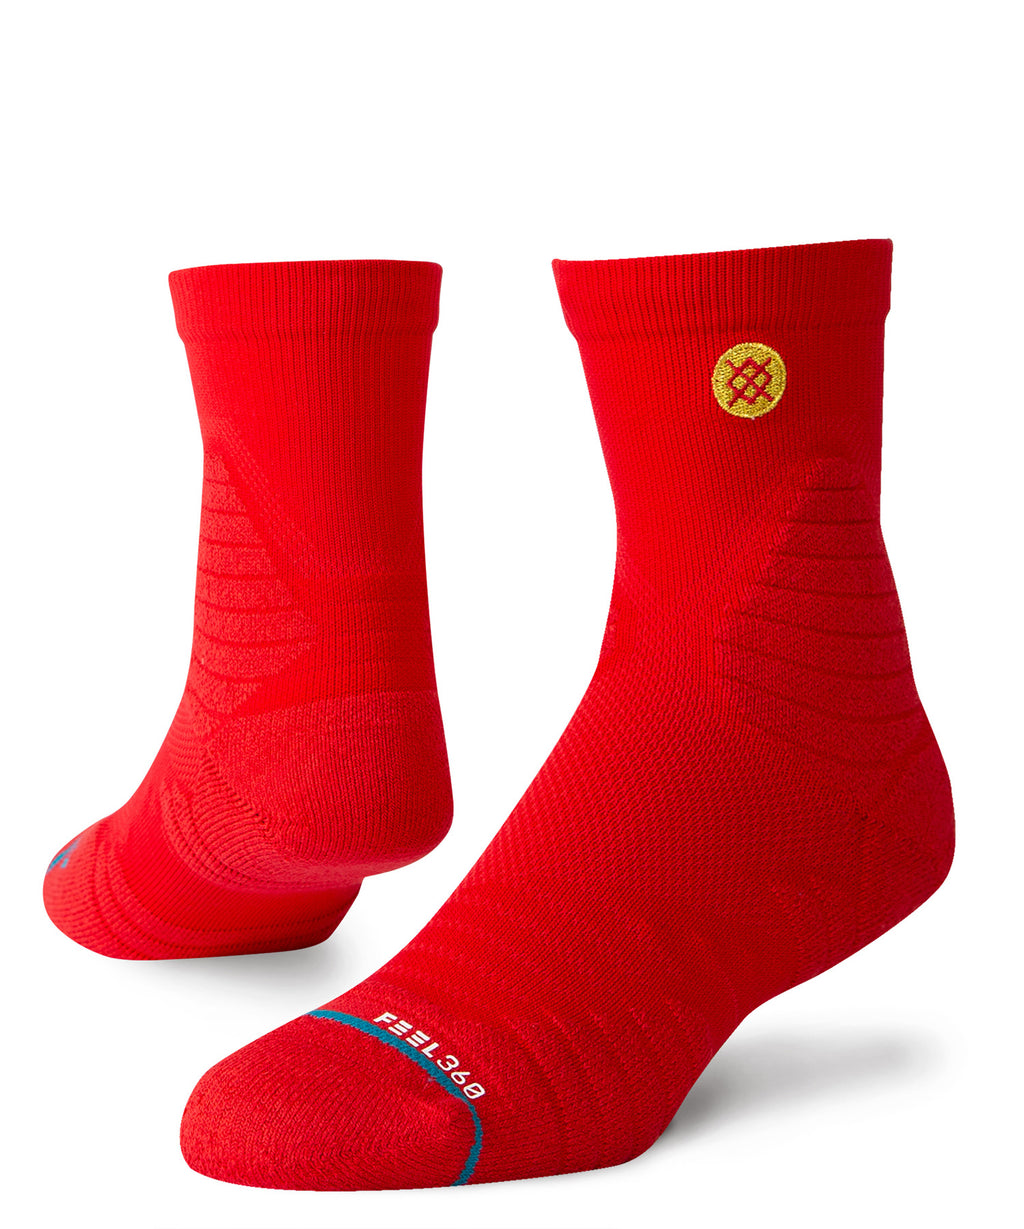 Gameday Pro Quarter Socks